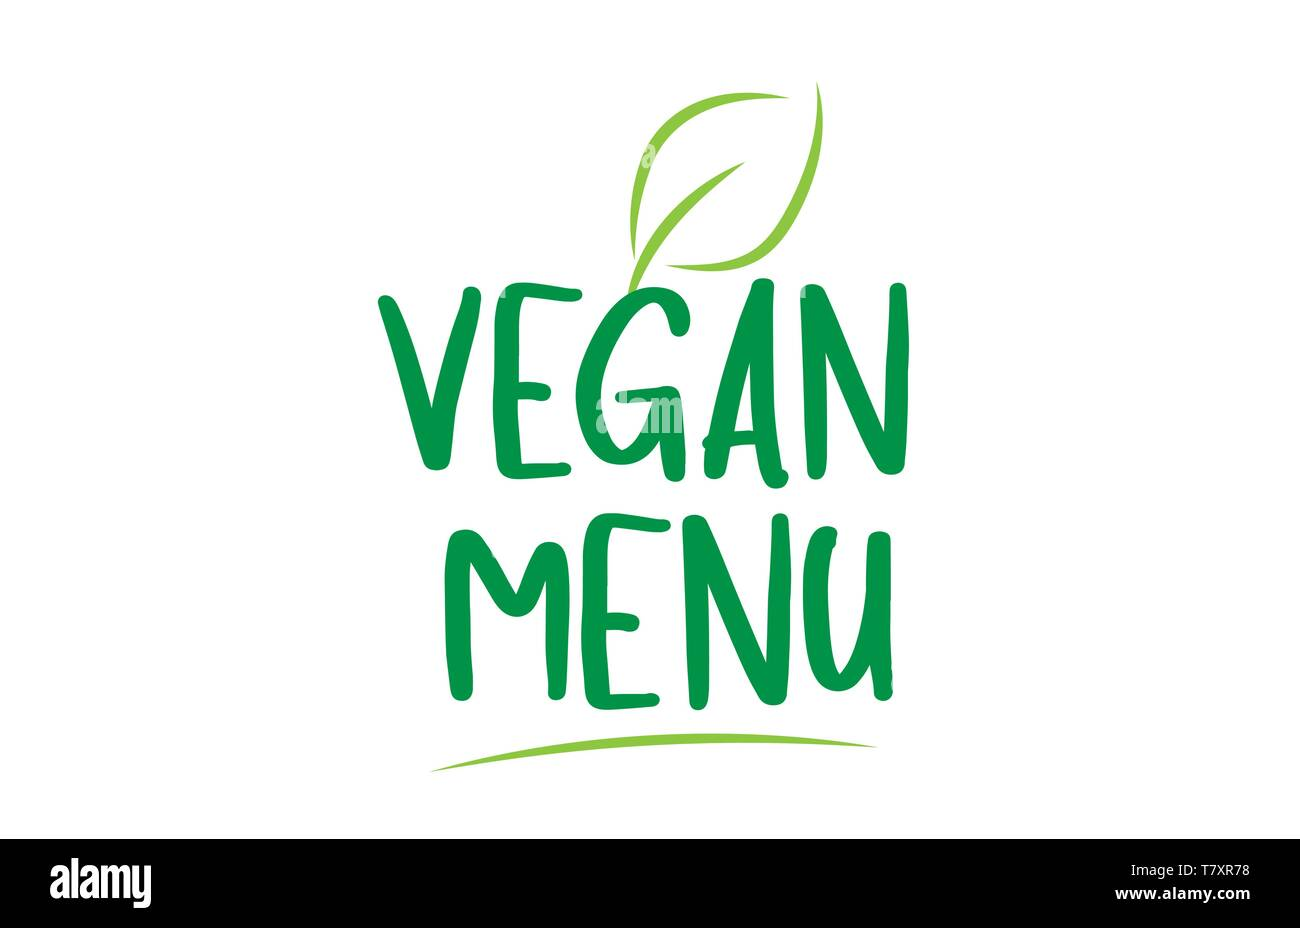 vegan menu green word text with leaf suitable for icon, badge or